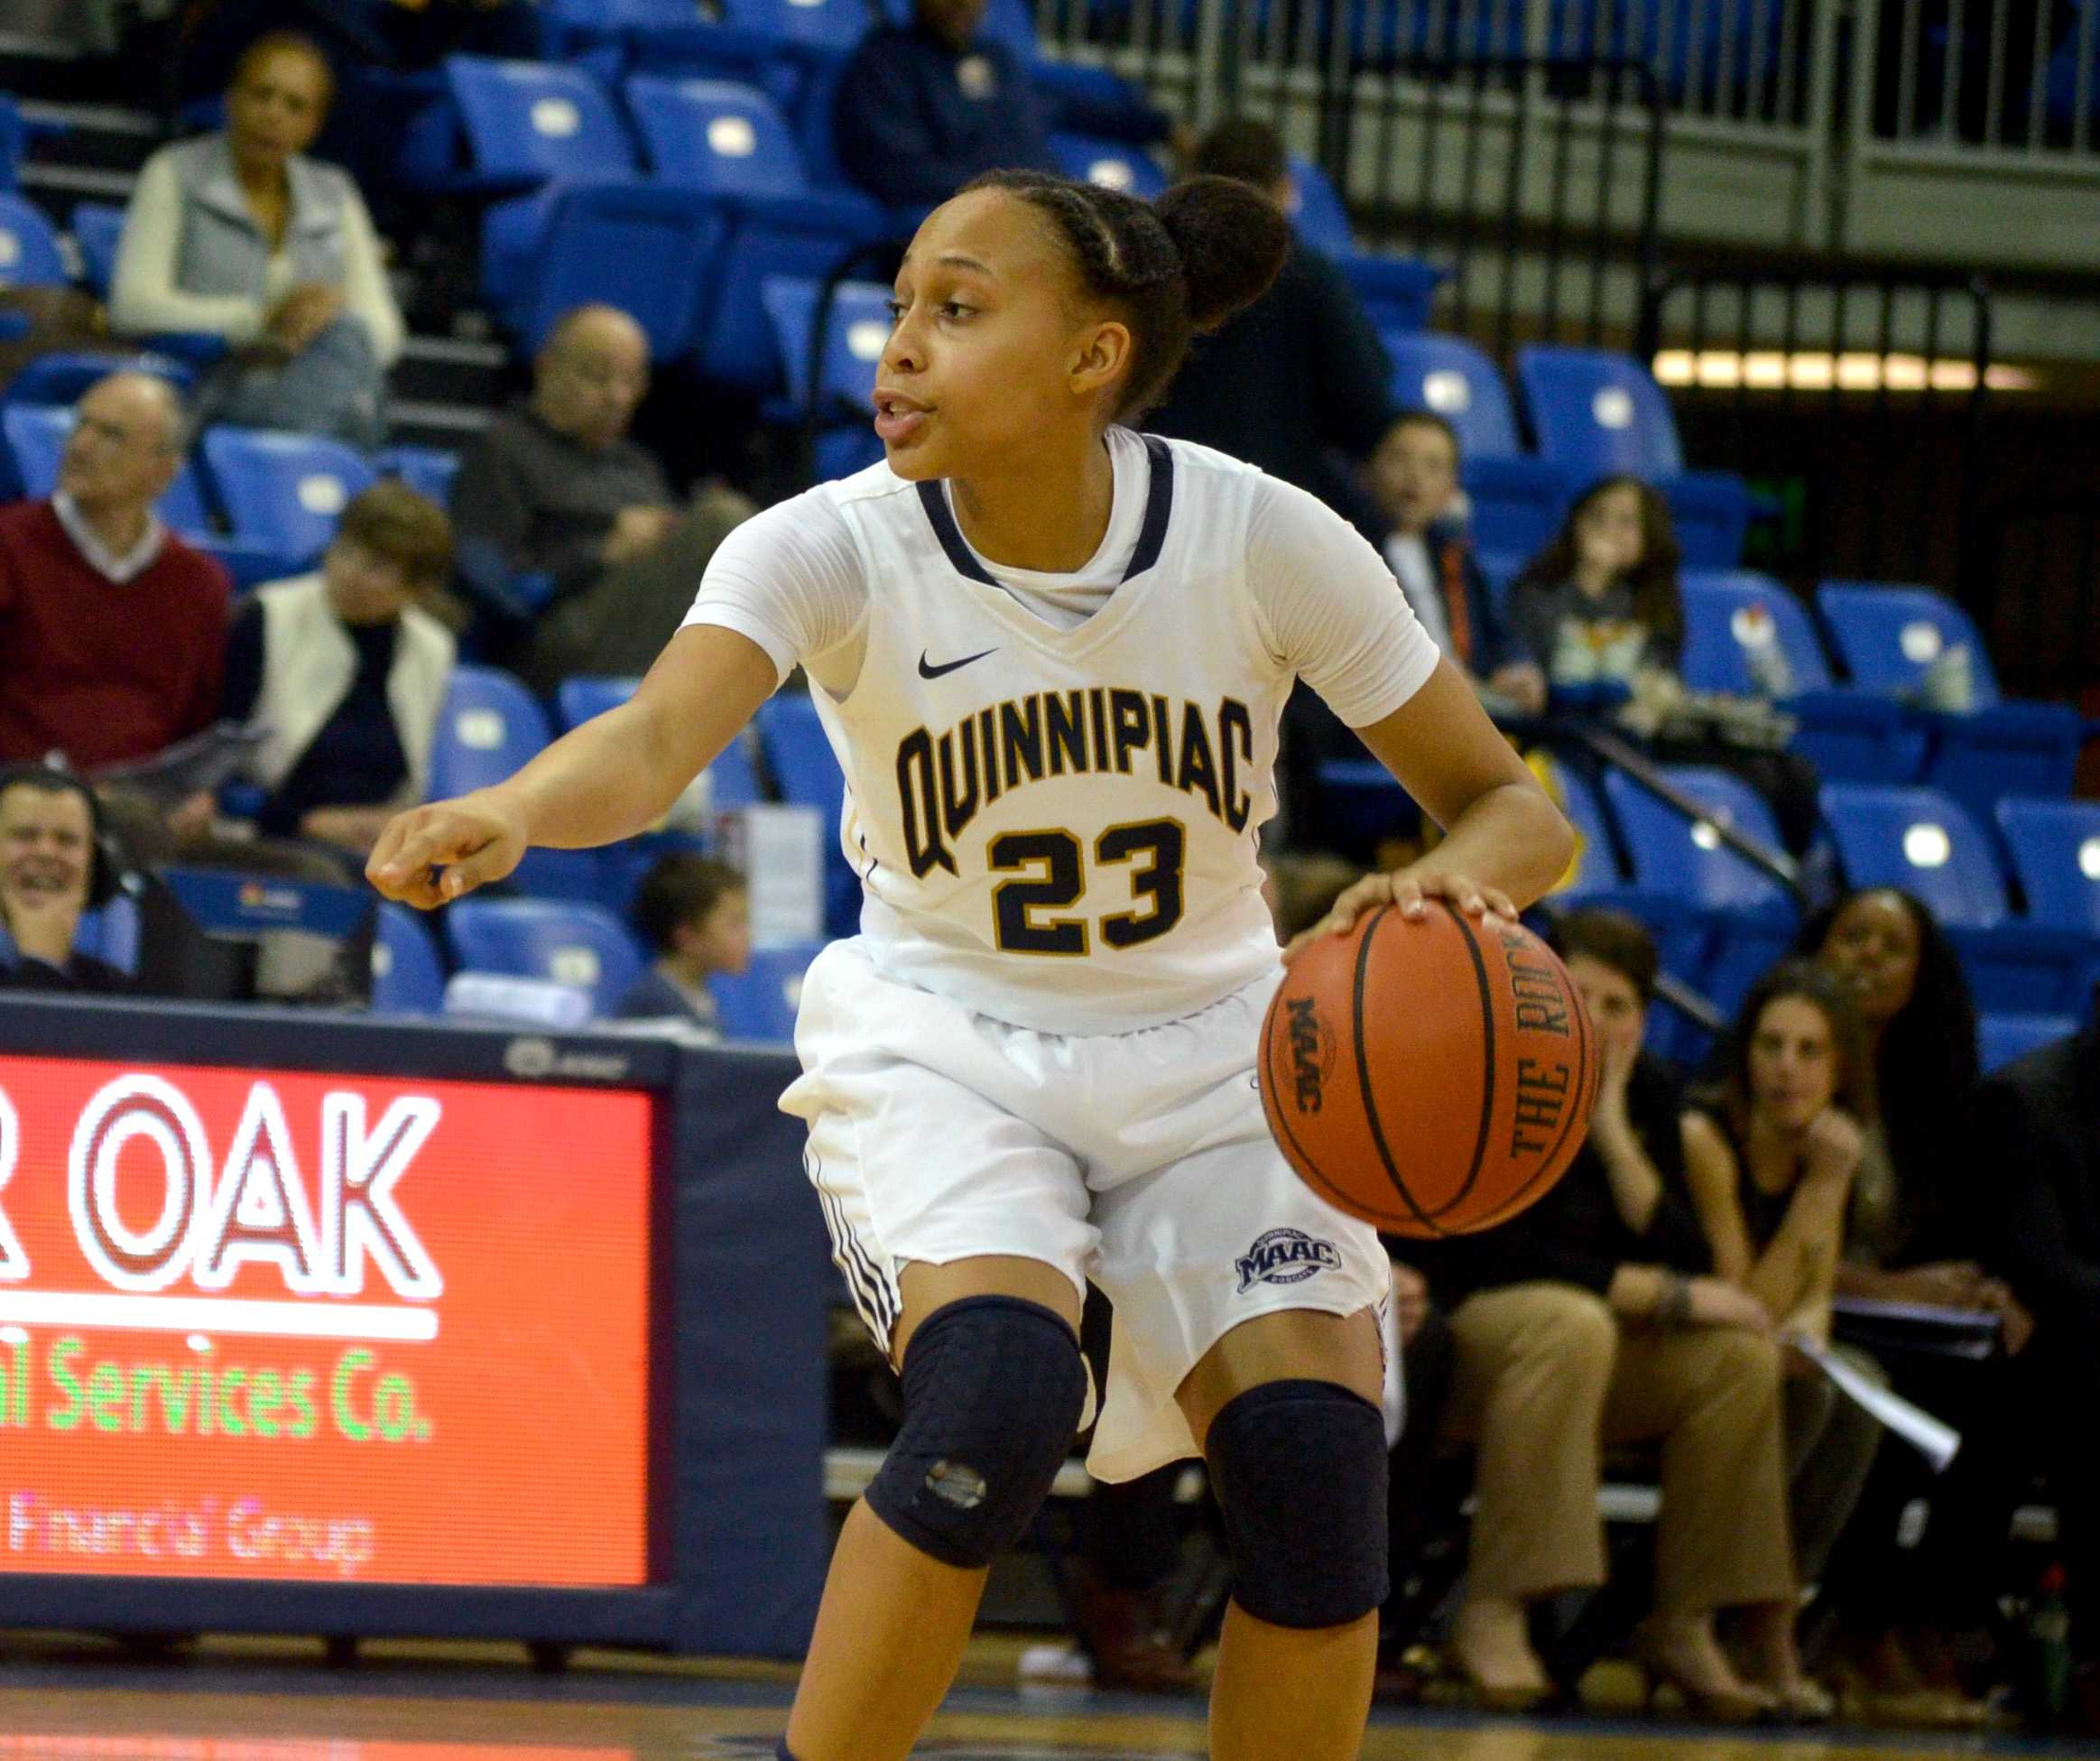 Women's basketball continues hot streak, tops Monmouth